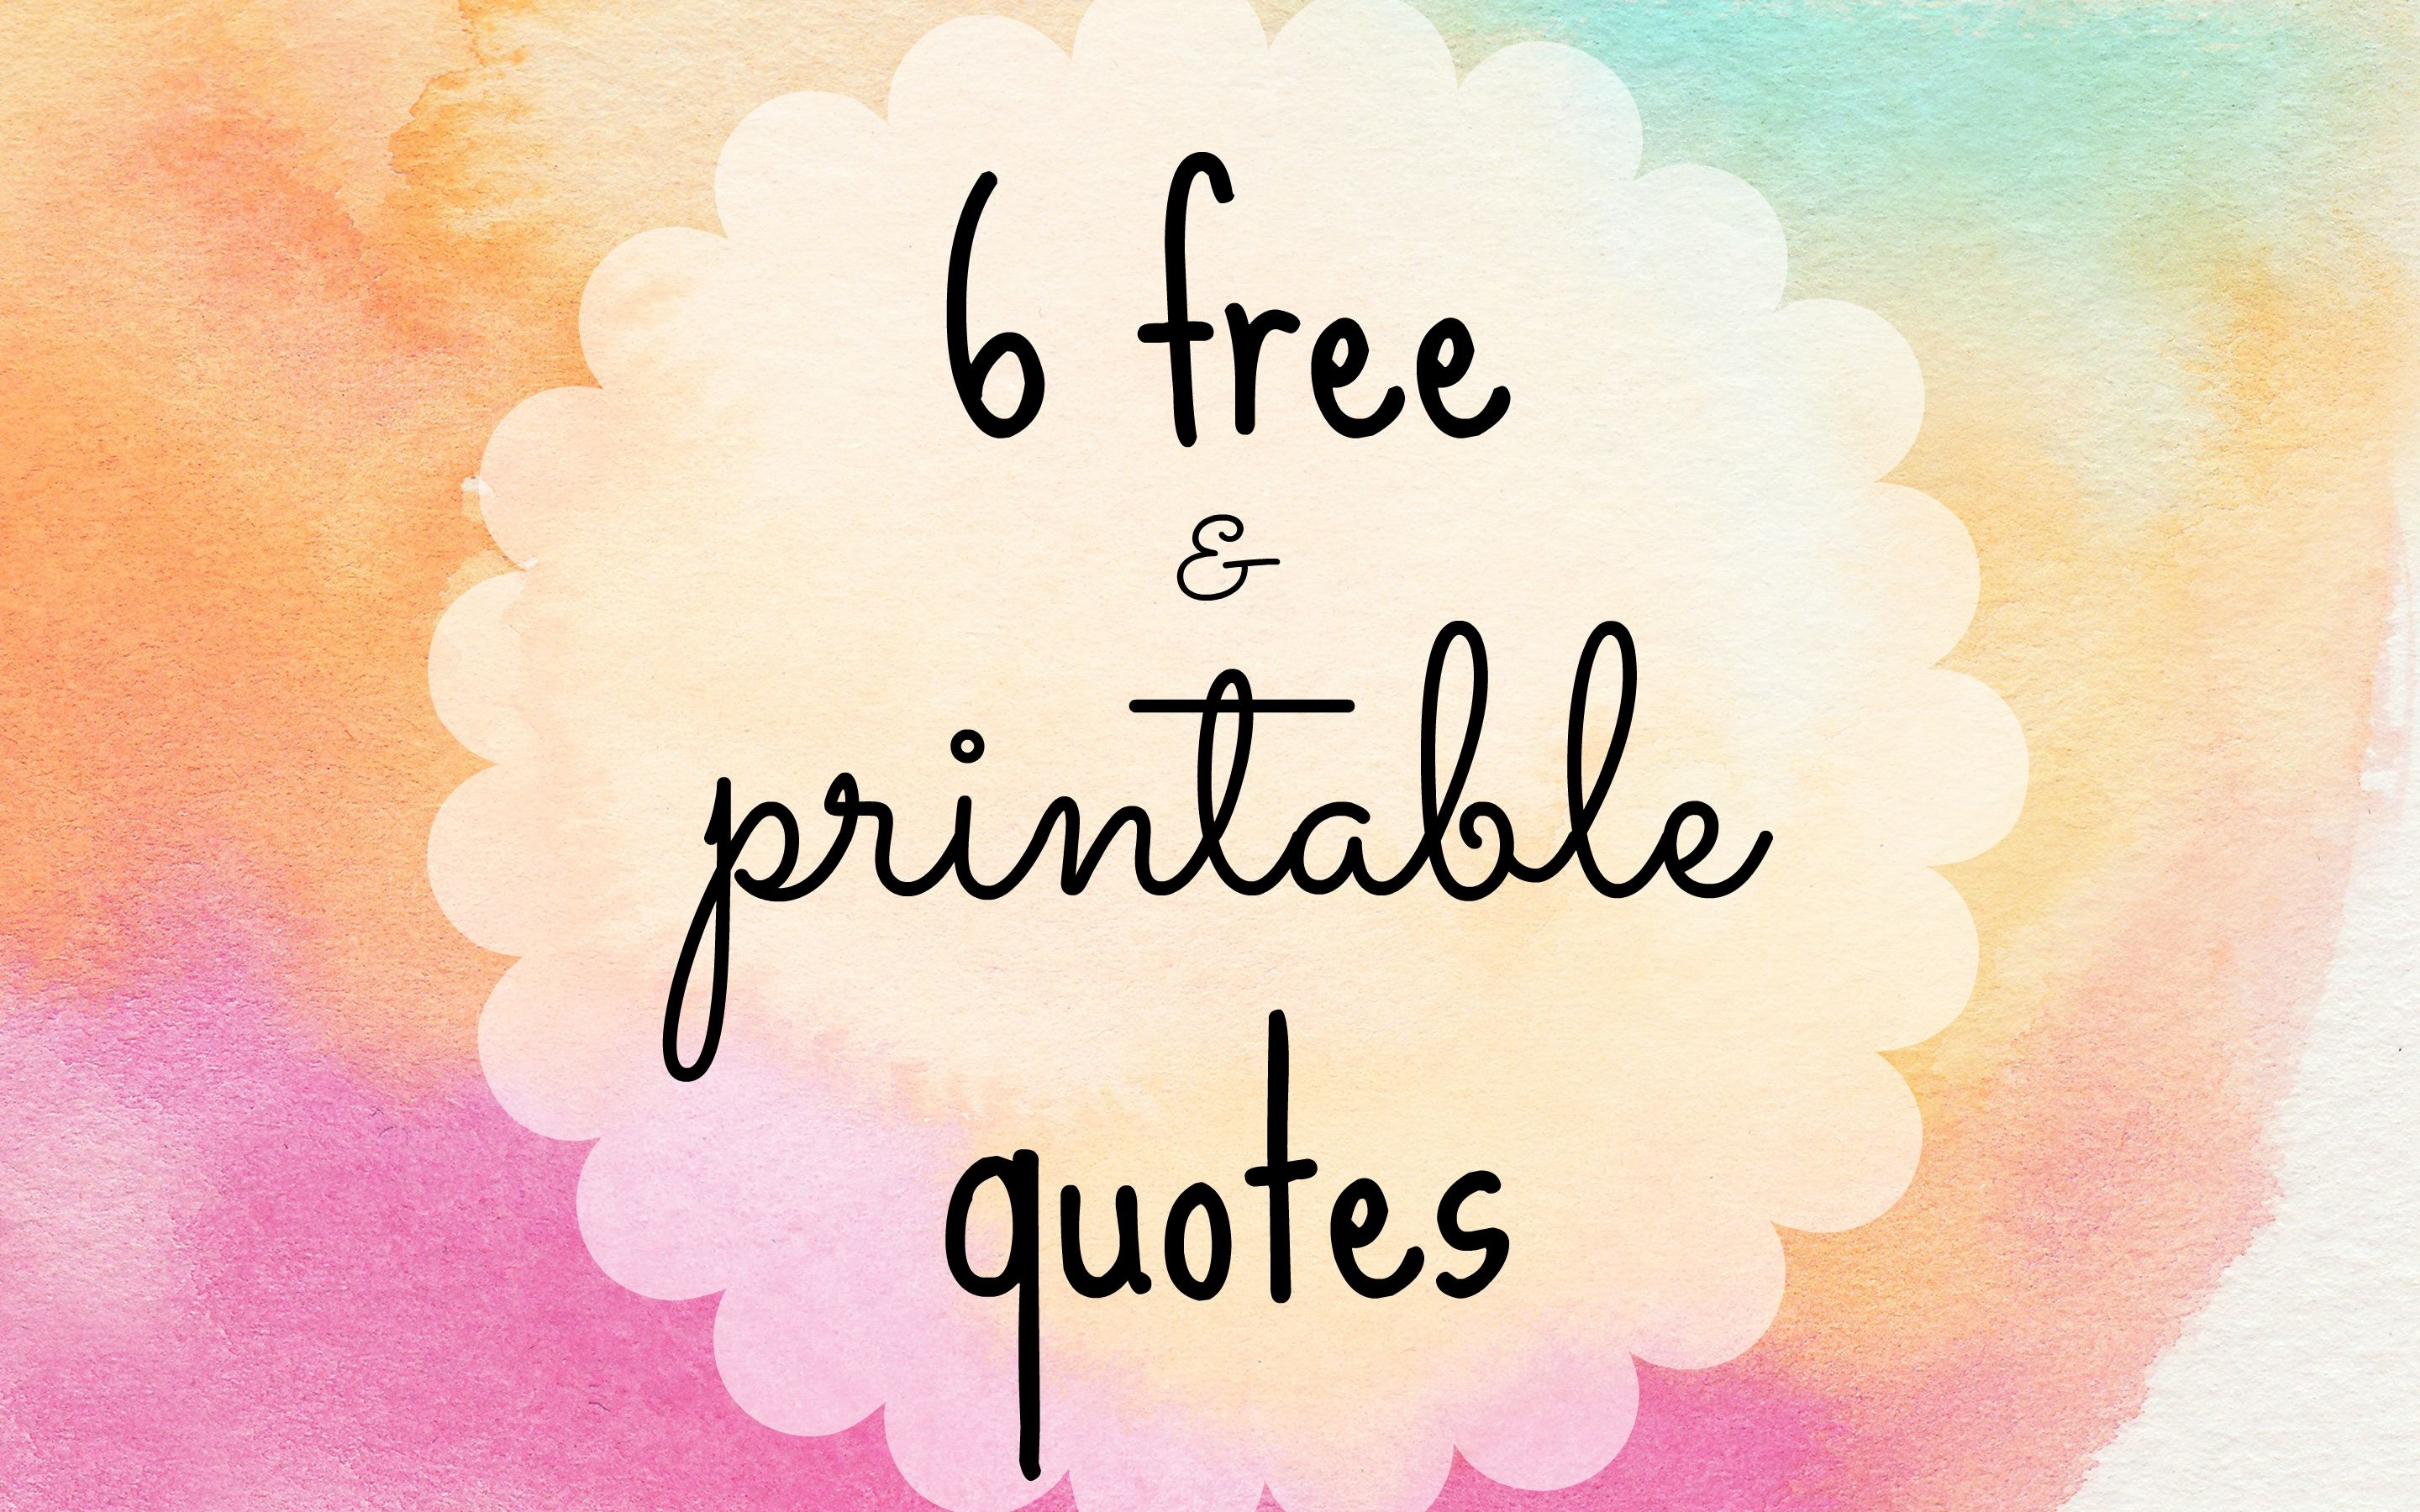 6 Free Printable Quotes To Dress Your Desk - Free Printable Quotes